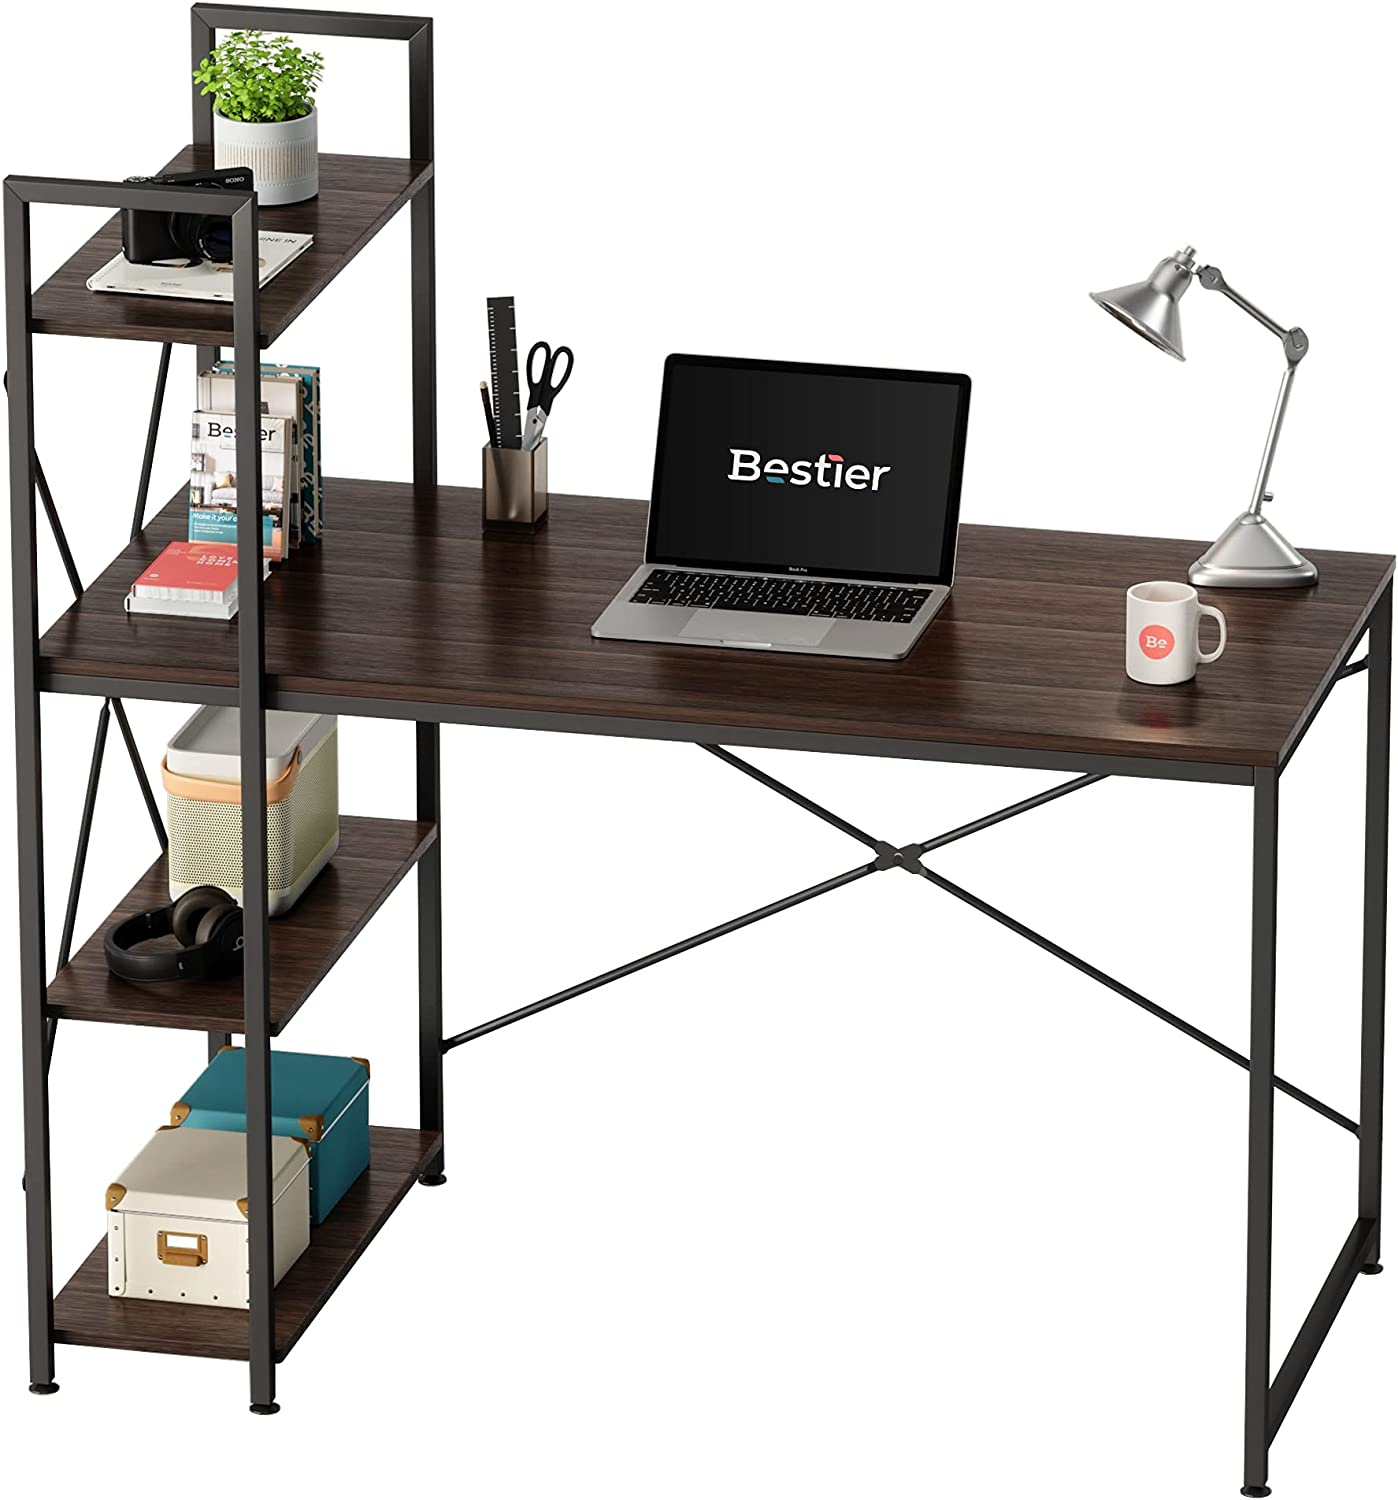 Bestier Computer Desk with Storage Shelves Manufacturer OFFicial shop D Office Home Inch Oklahoma City Mall 47